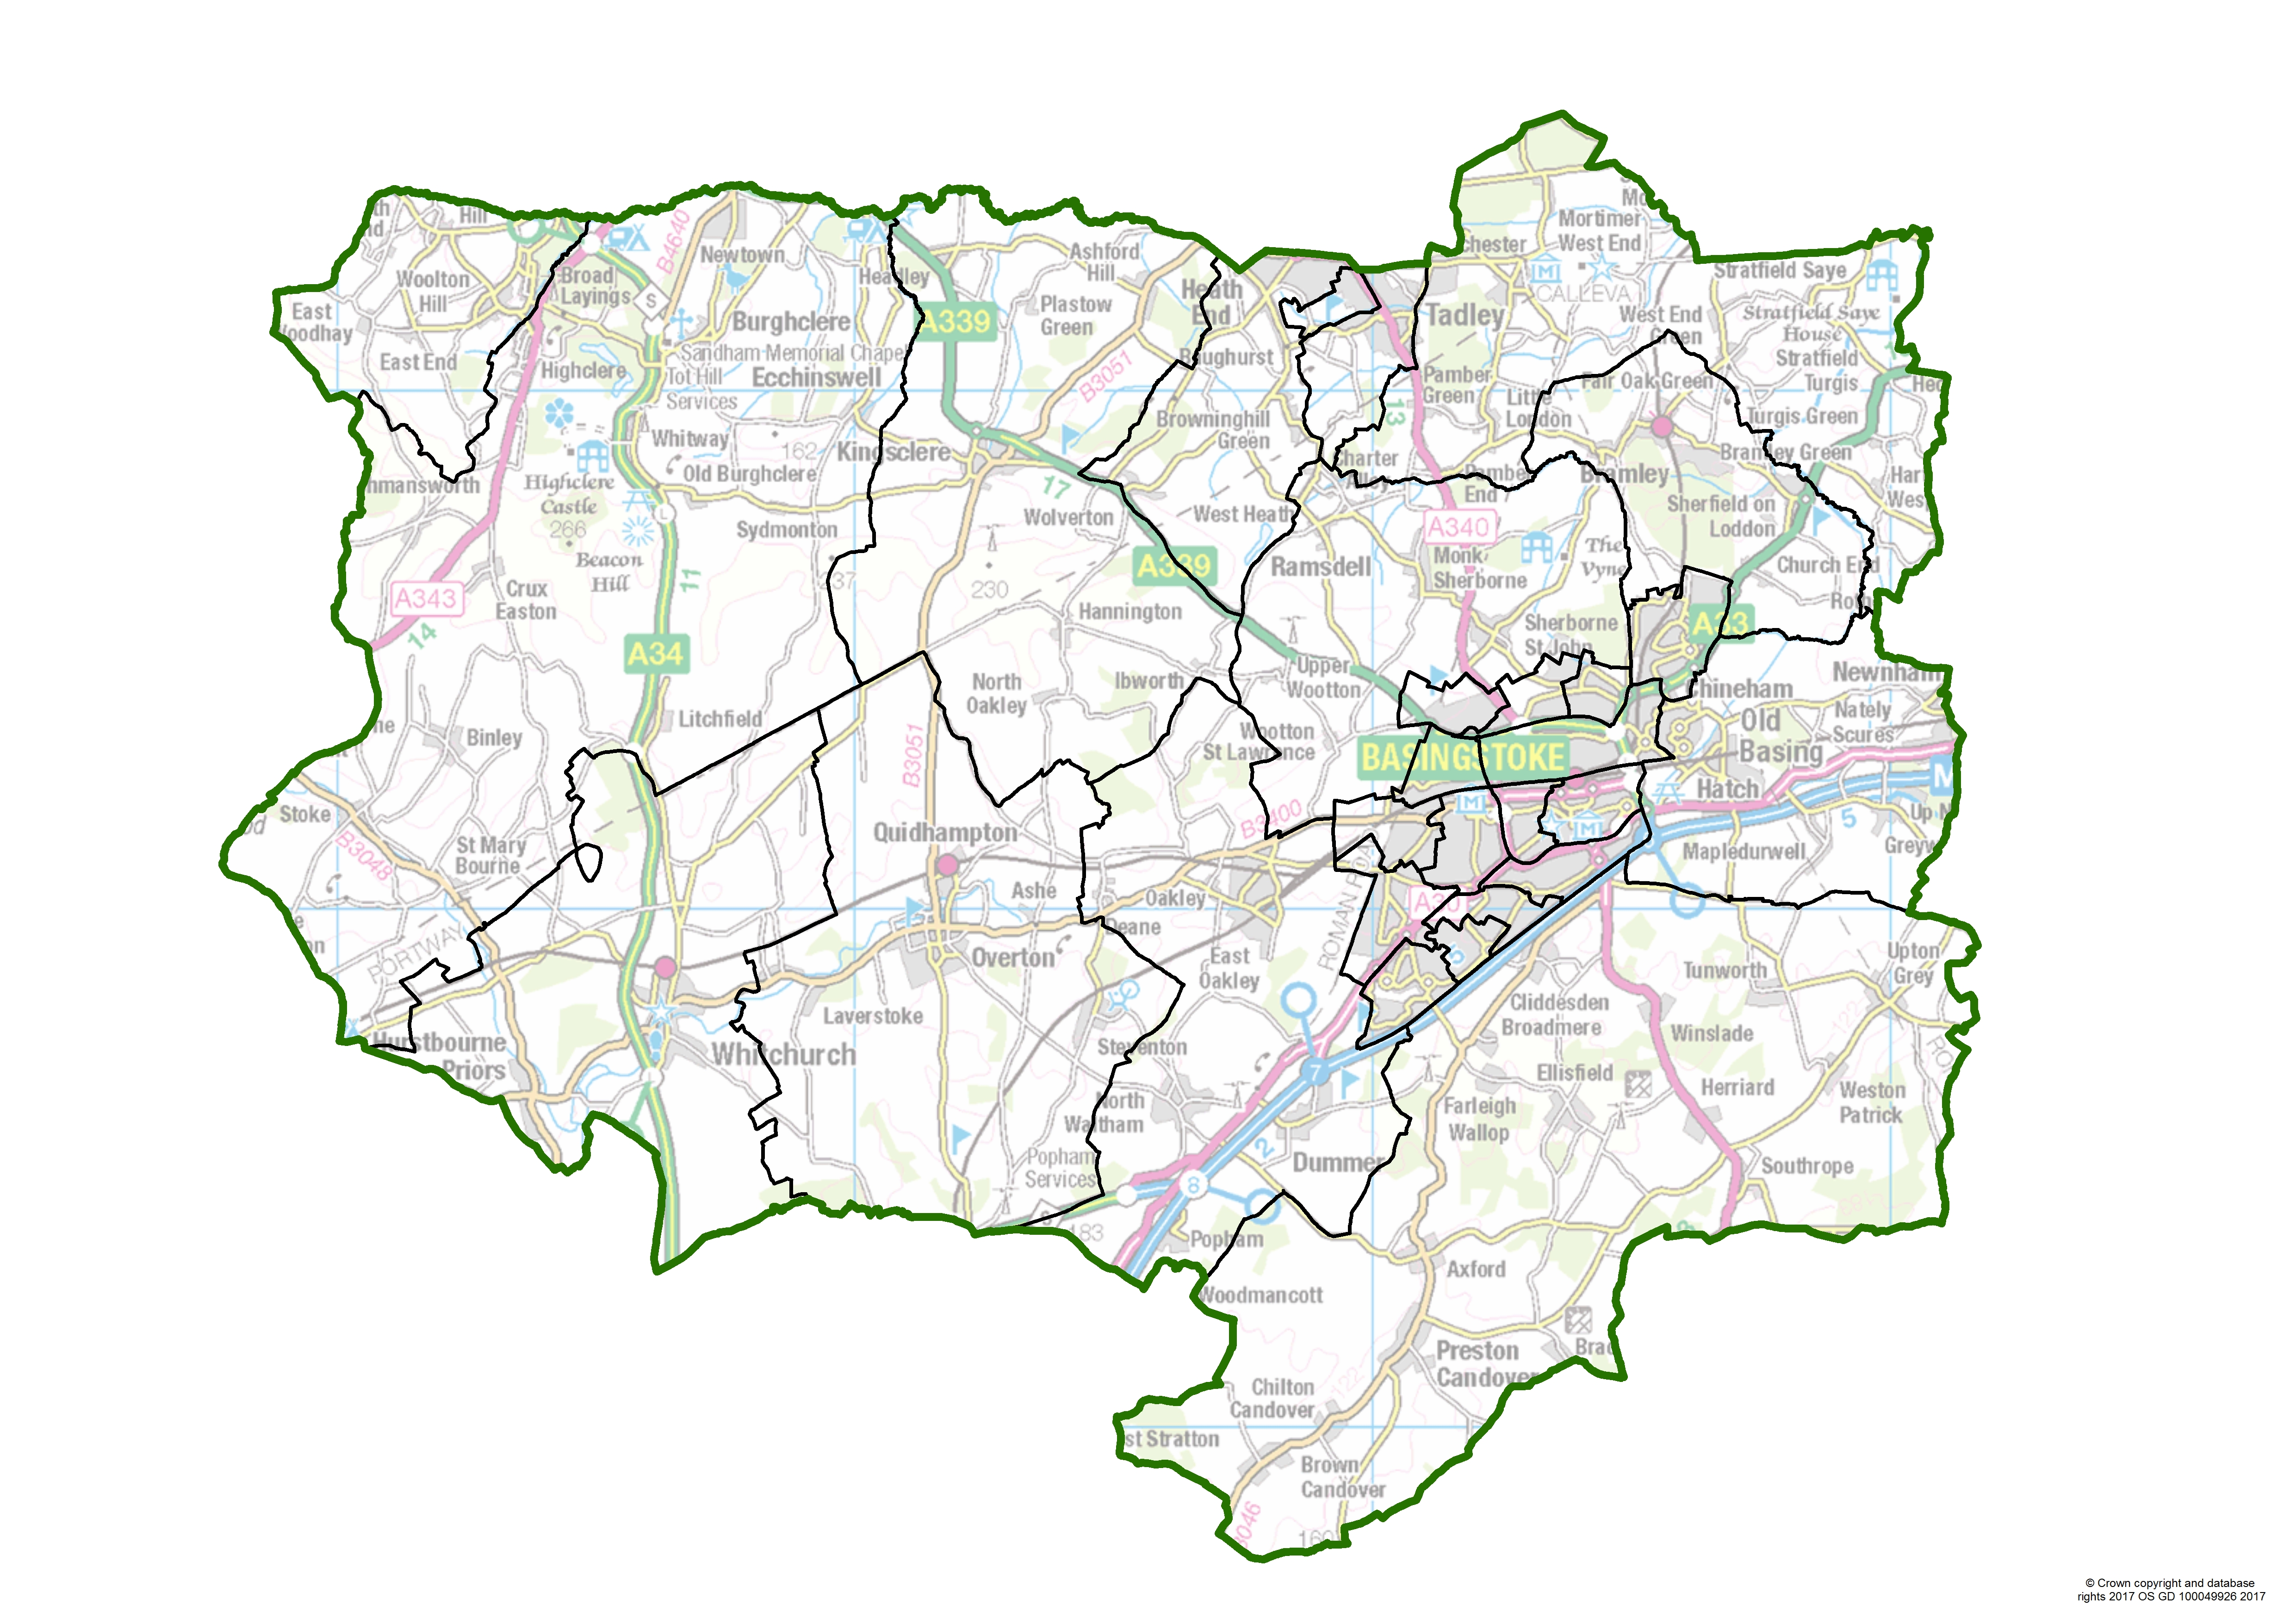 Map of current Basingstoke and Deane Borough Council ward boundaries